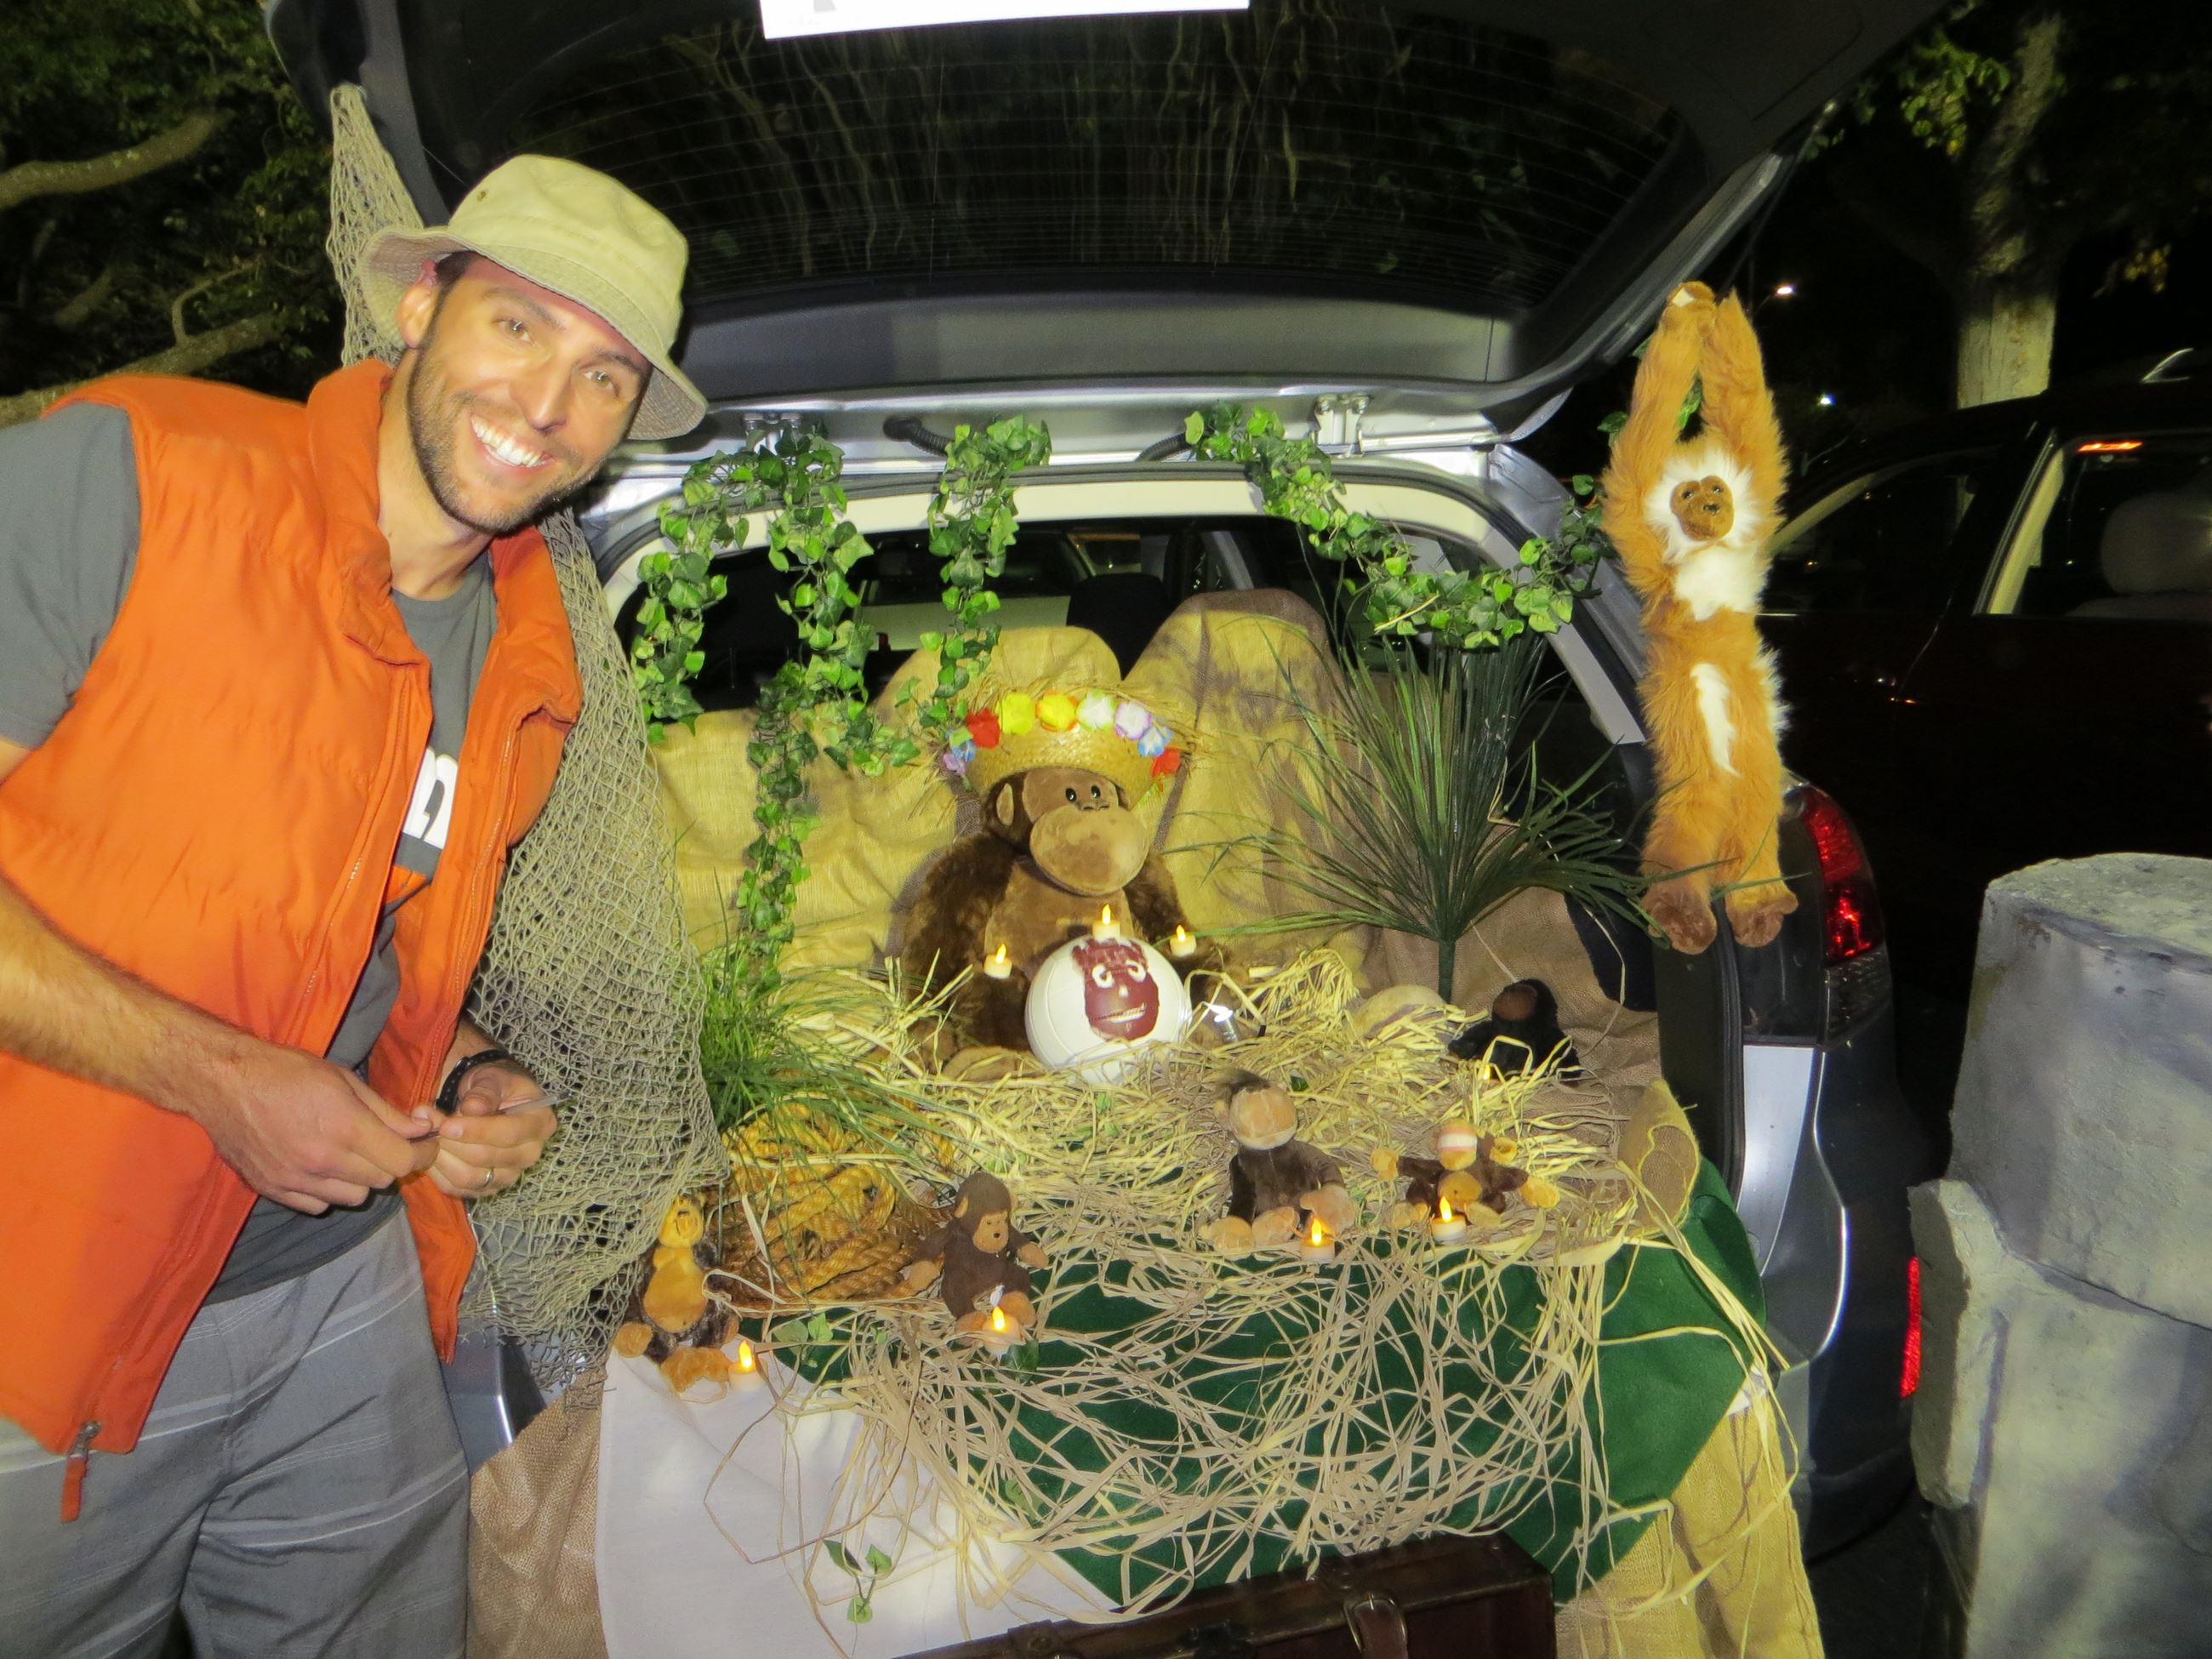 Man in safari costume with car truck decorated with Castaway movie decor